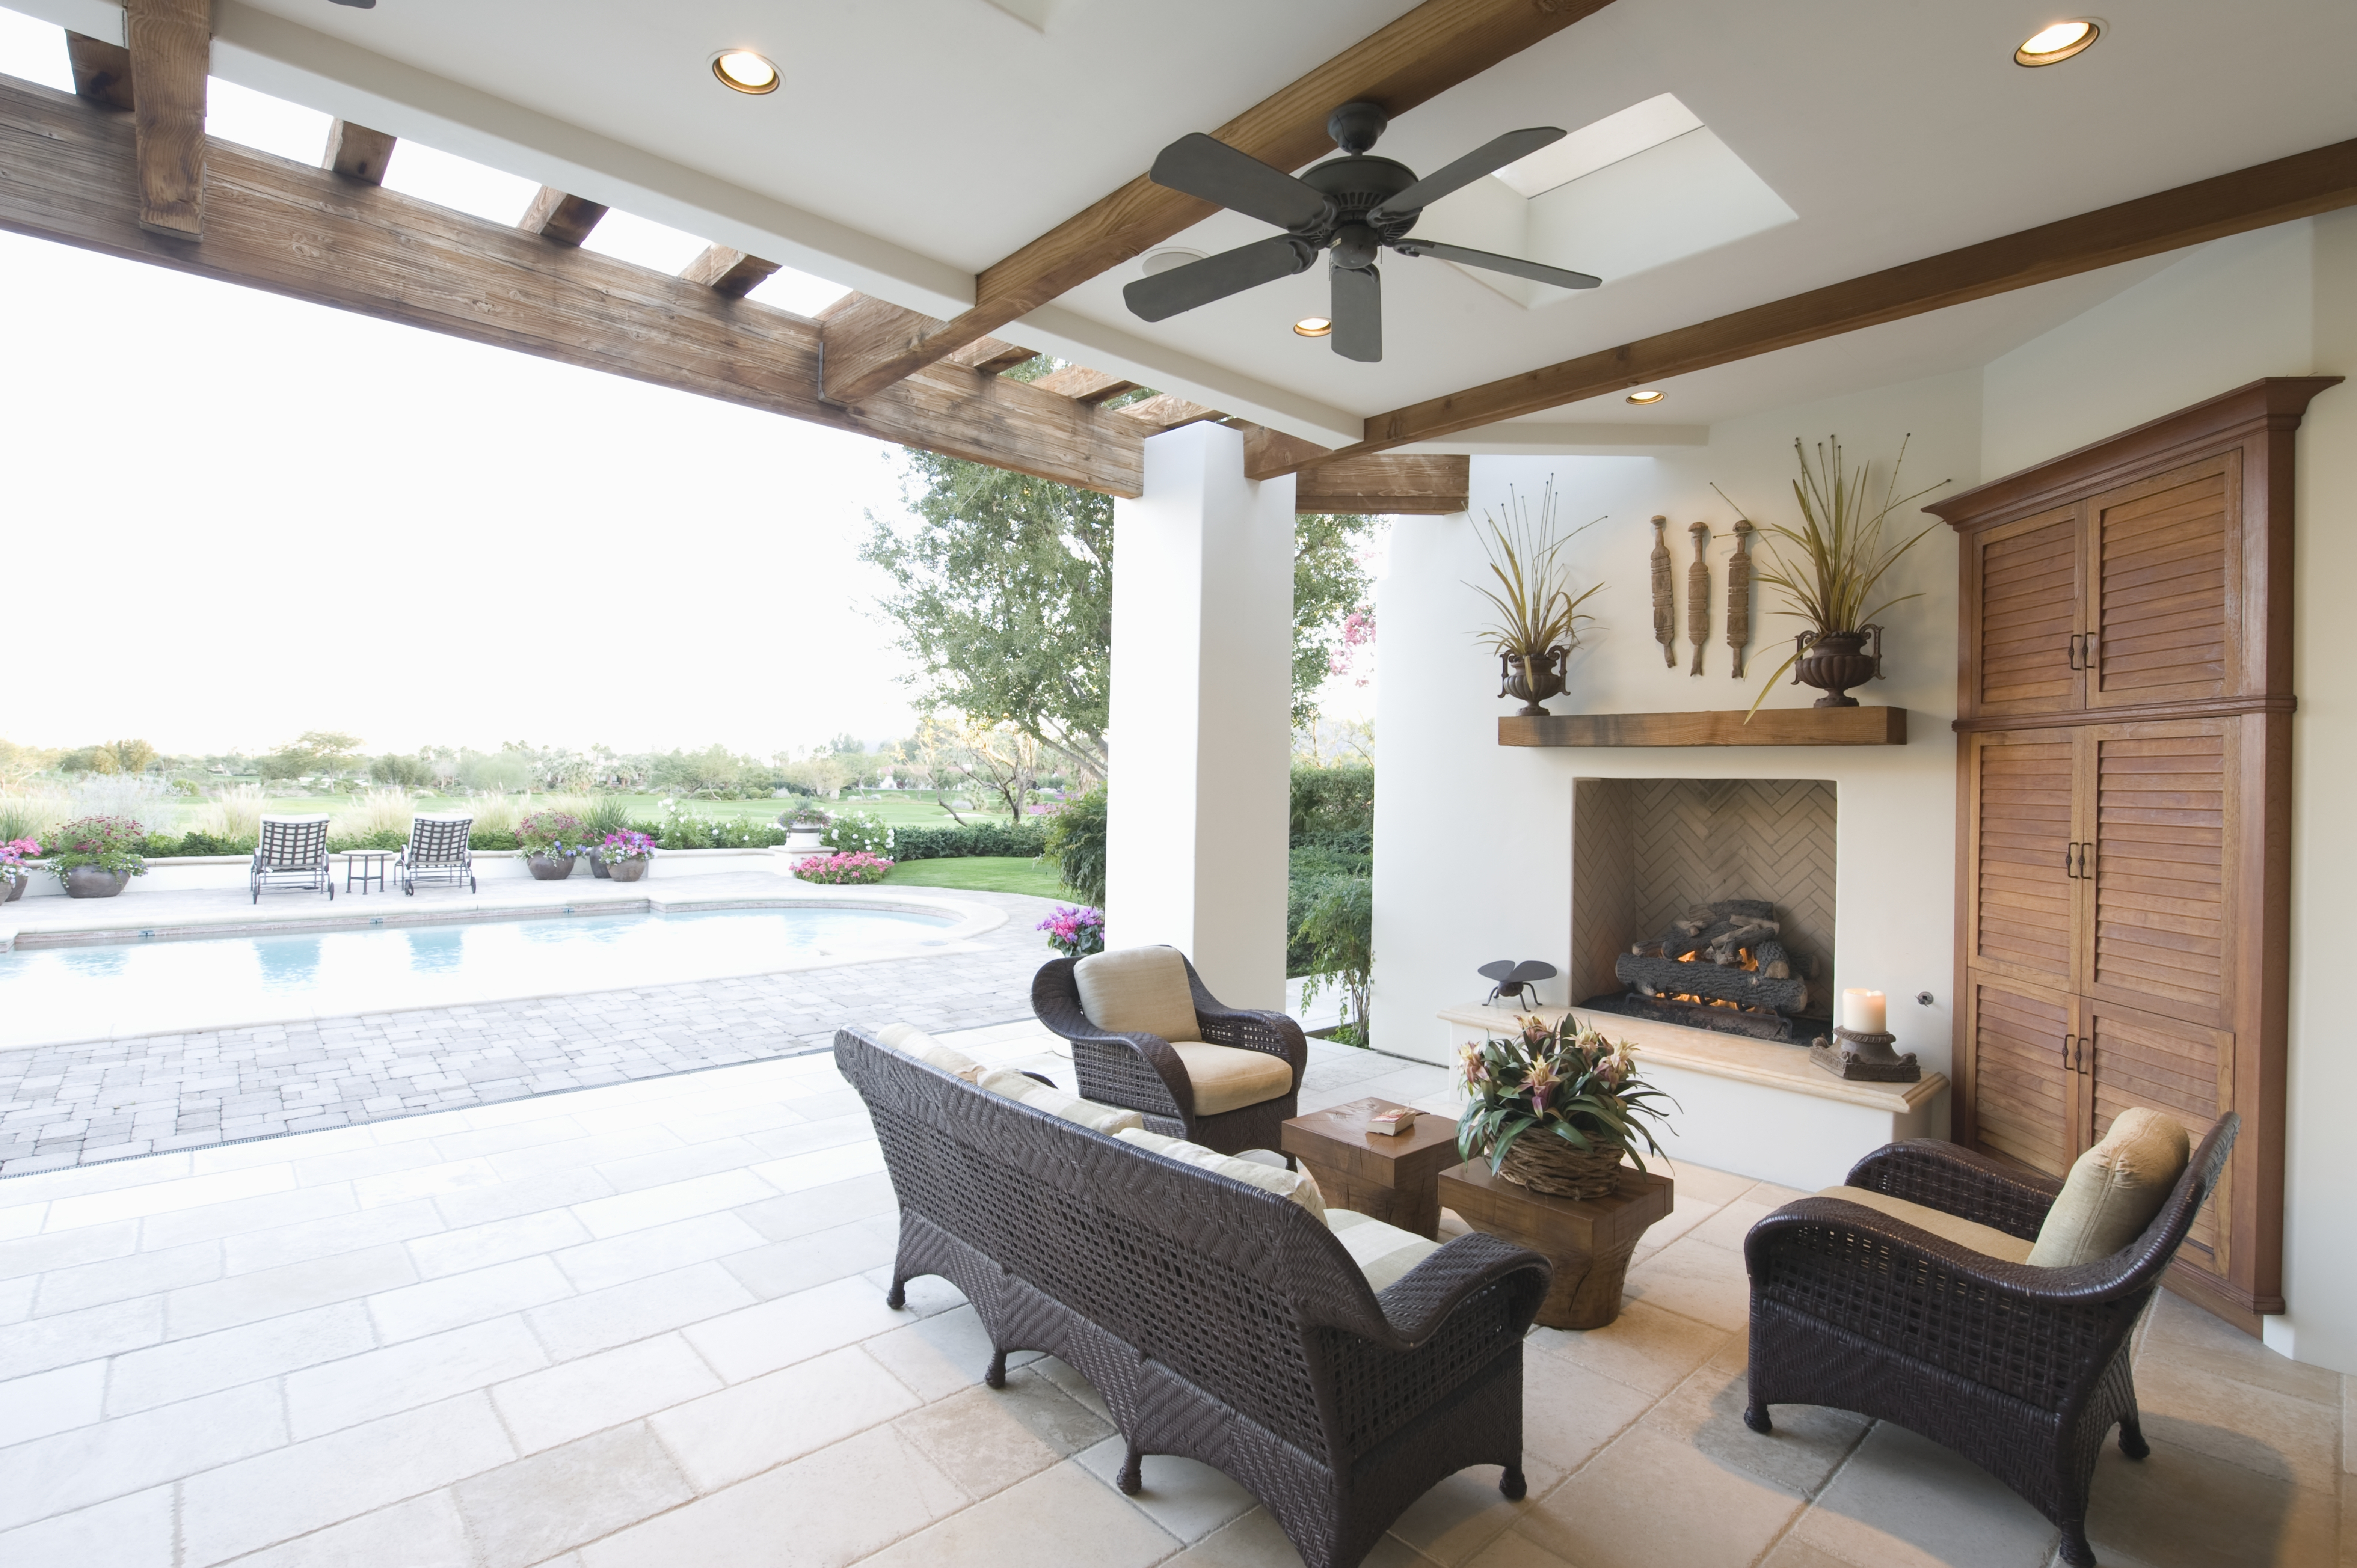 Patio Fan Unique Ceiling Fans Outdoor Patio Home Design Ideas And In Recent Outdoor Ceiling Fans For Patios (View 17 of 20)